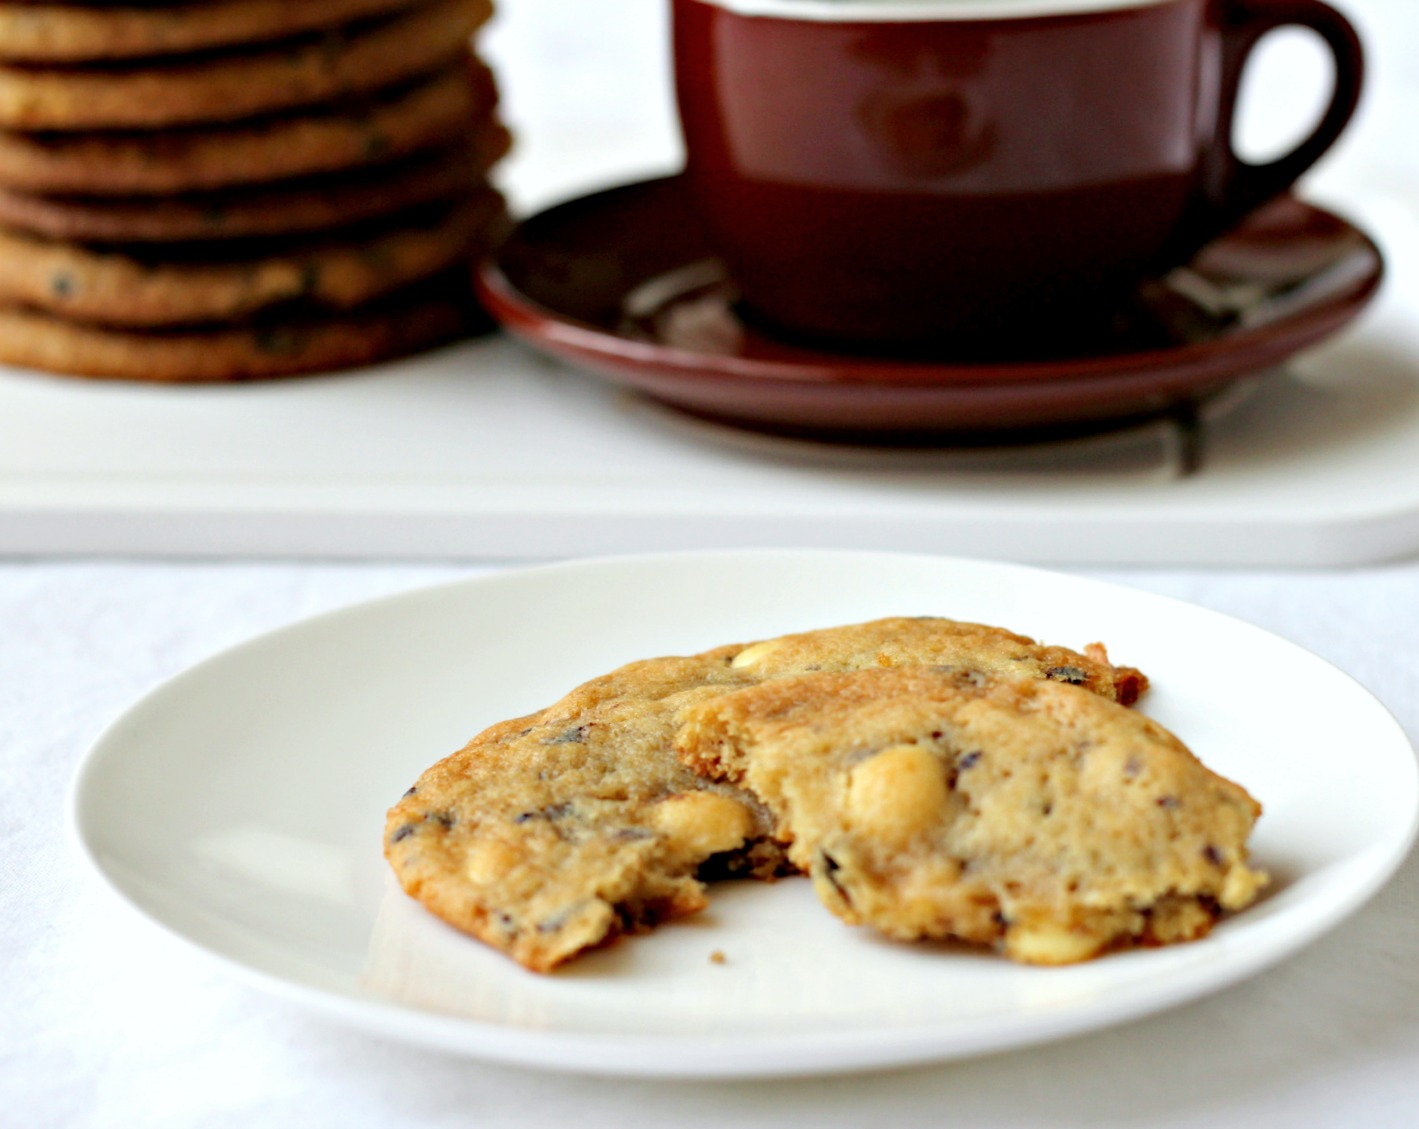 ... cappuccino and cookies have a cappuccino in cookies or have both and